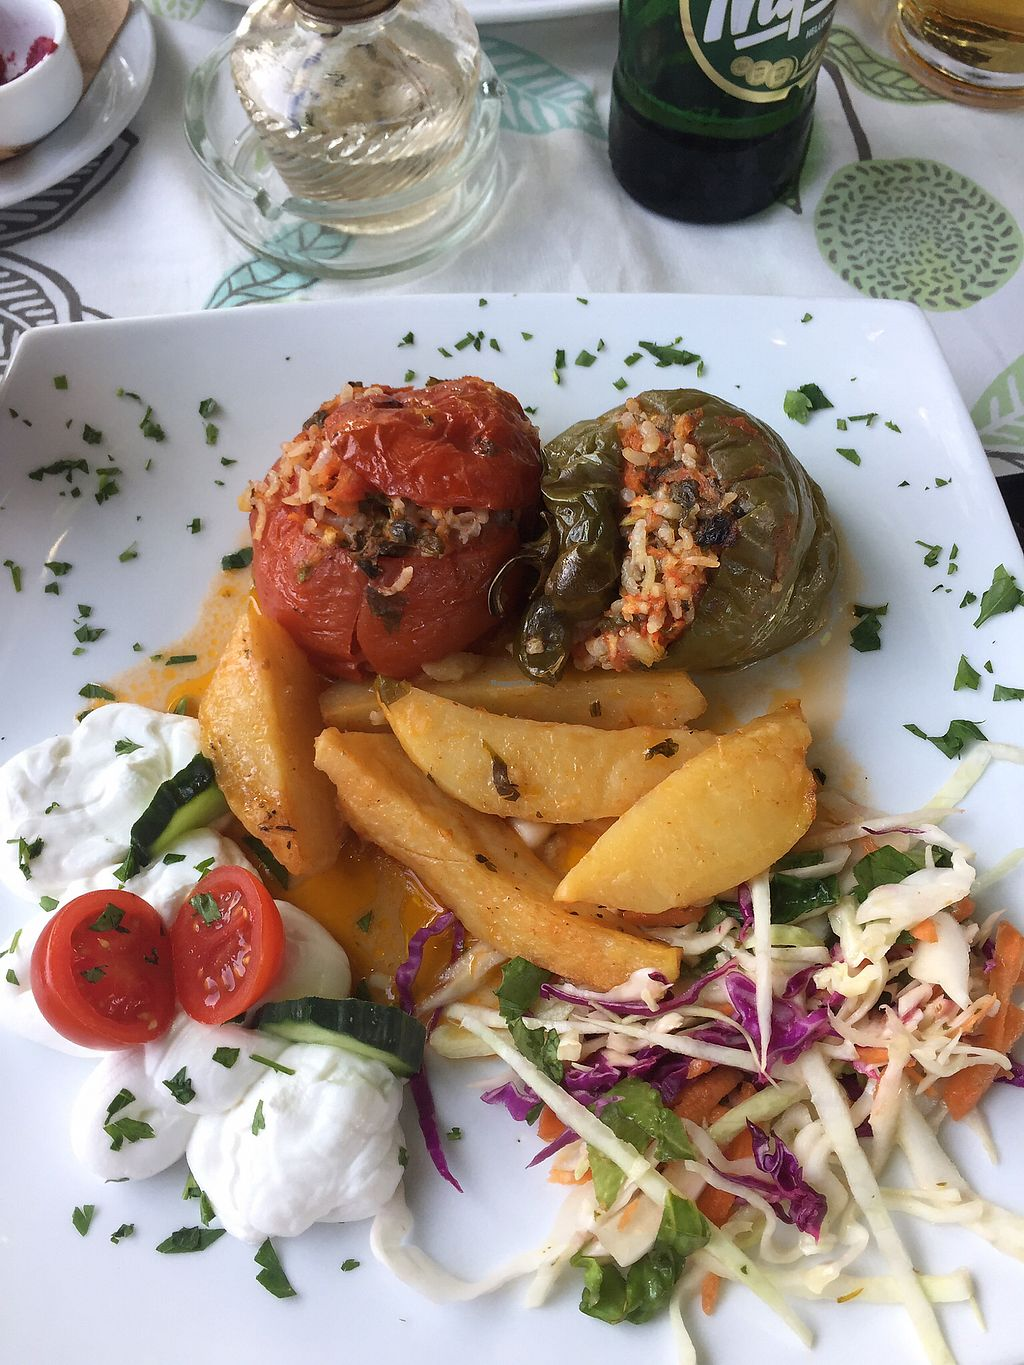 """Photo of Myli Restaurant Cafe  by <a href=""""/members/profile/Sophiapalmqvist"""">Sophiapalmqvist</a> <br/>vegetarian dish <br/> June 30, 2017  - <a href='/contact/abuse/image/94363/275340'>Report</a>"""